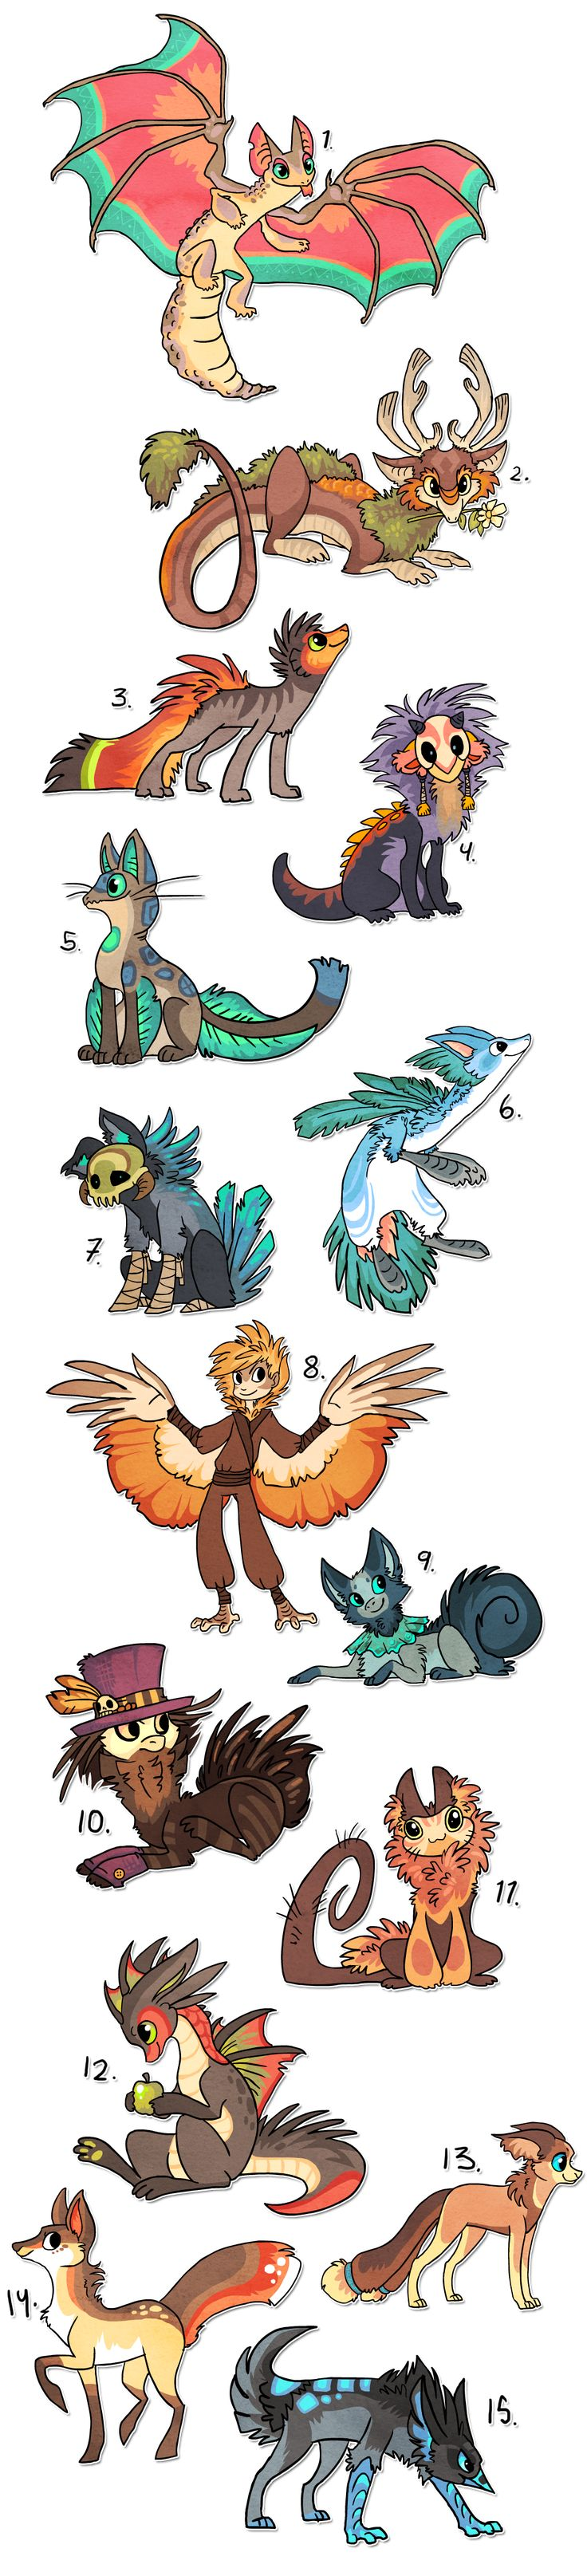 list of mythical creatures pdf